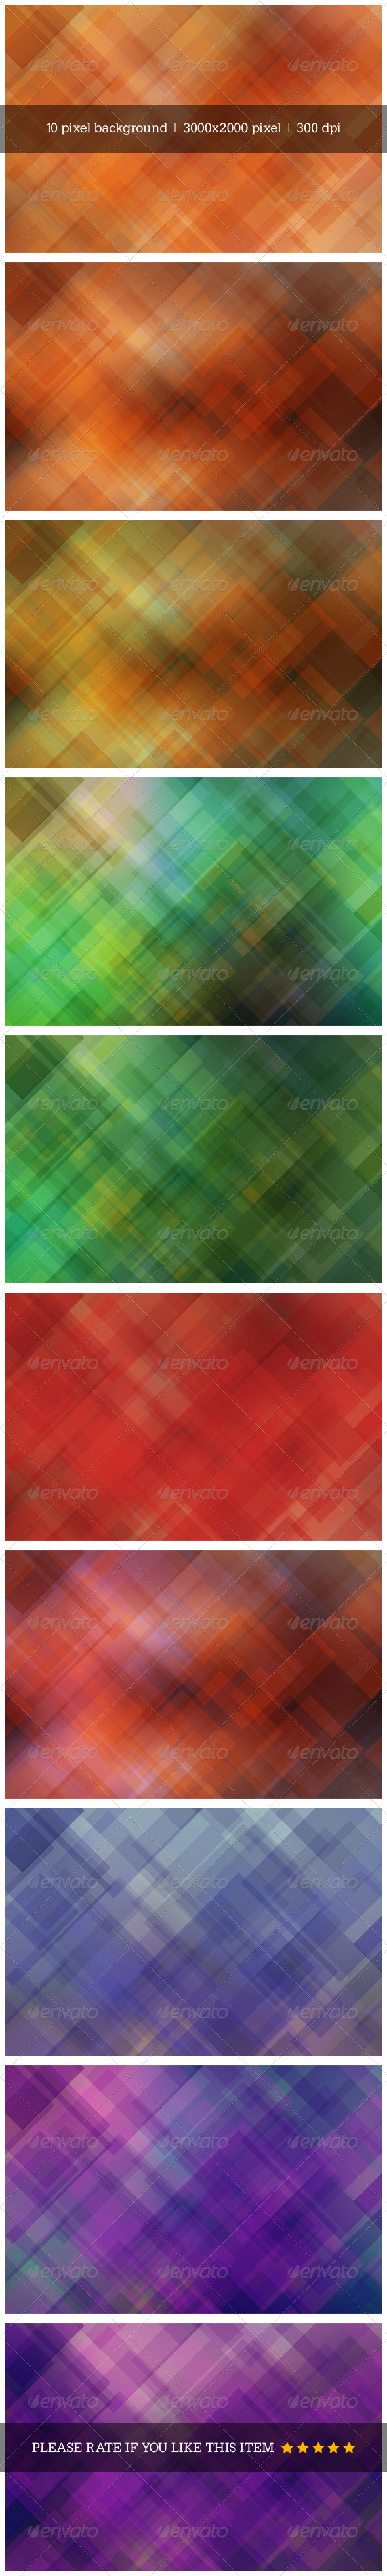 GraphicRiver Abstract Pixel Background 7849200